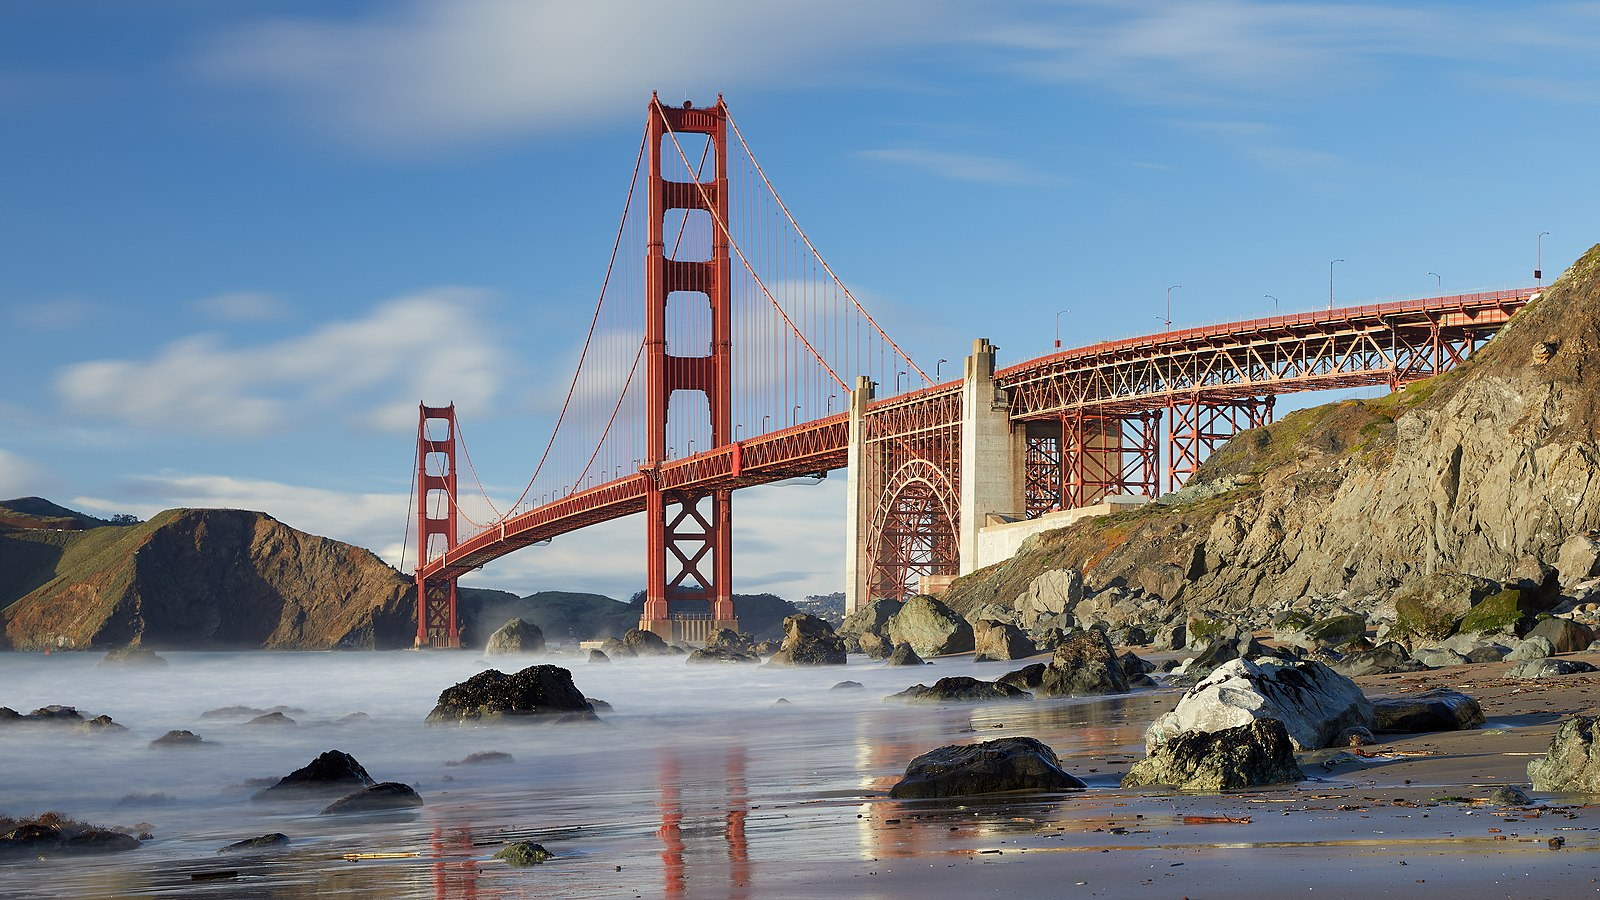 Golden Gate Bridge as seen from Marshall's Beach